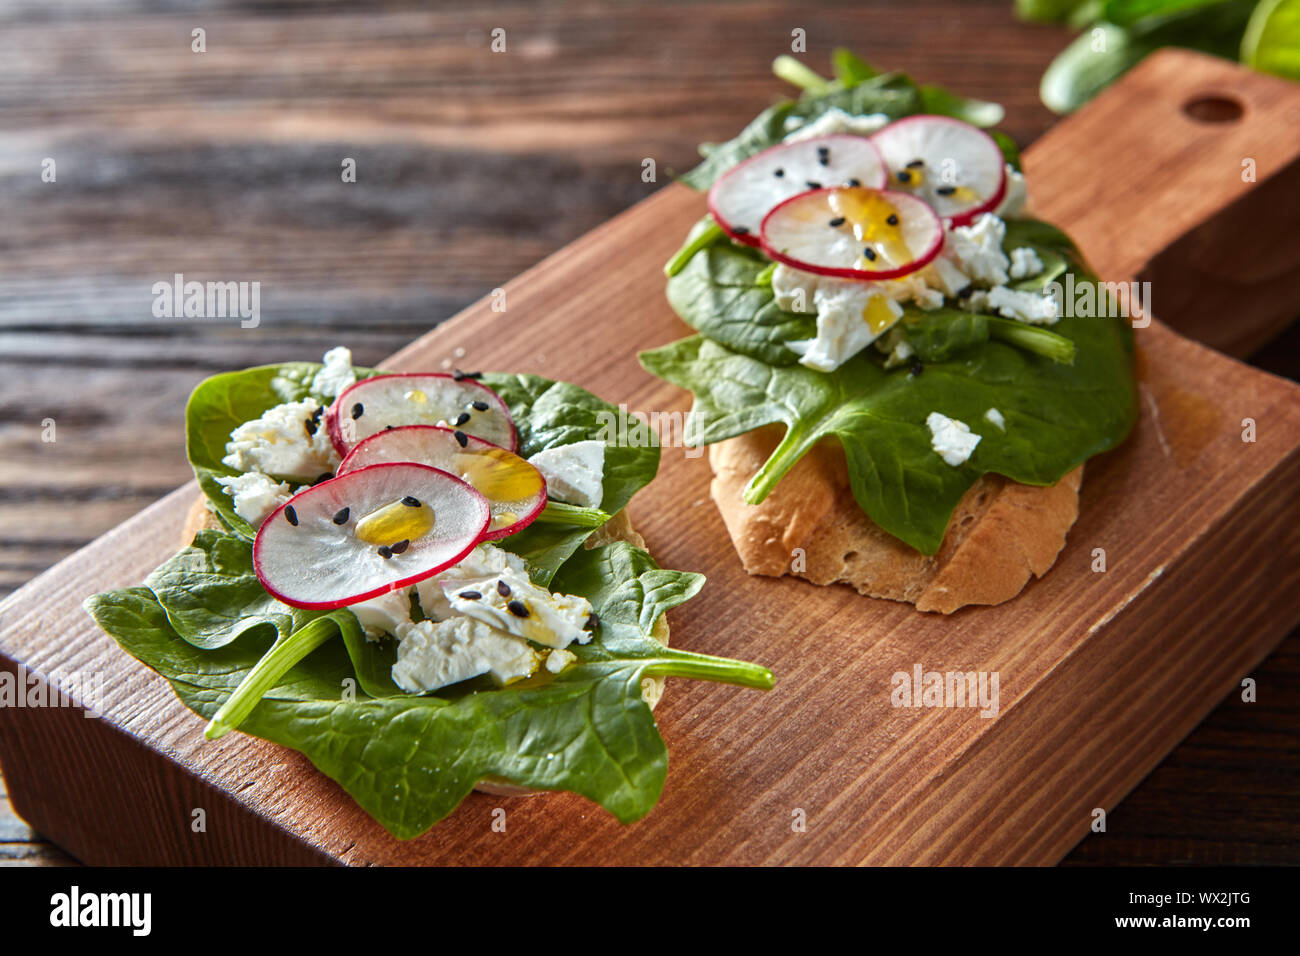 Ciabatta toasts with soft cottage cheese, slices of radish, fresh spinach, flax seeds on wooden background. Stock Photo